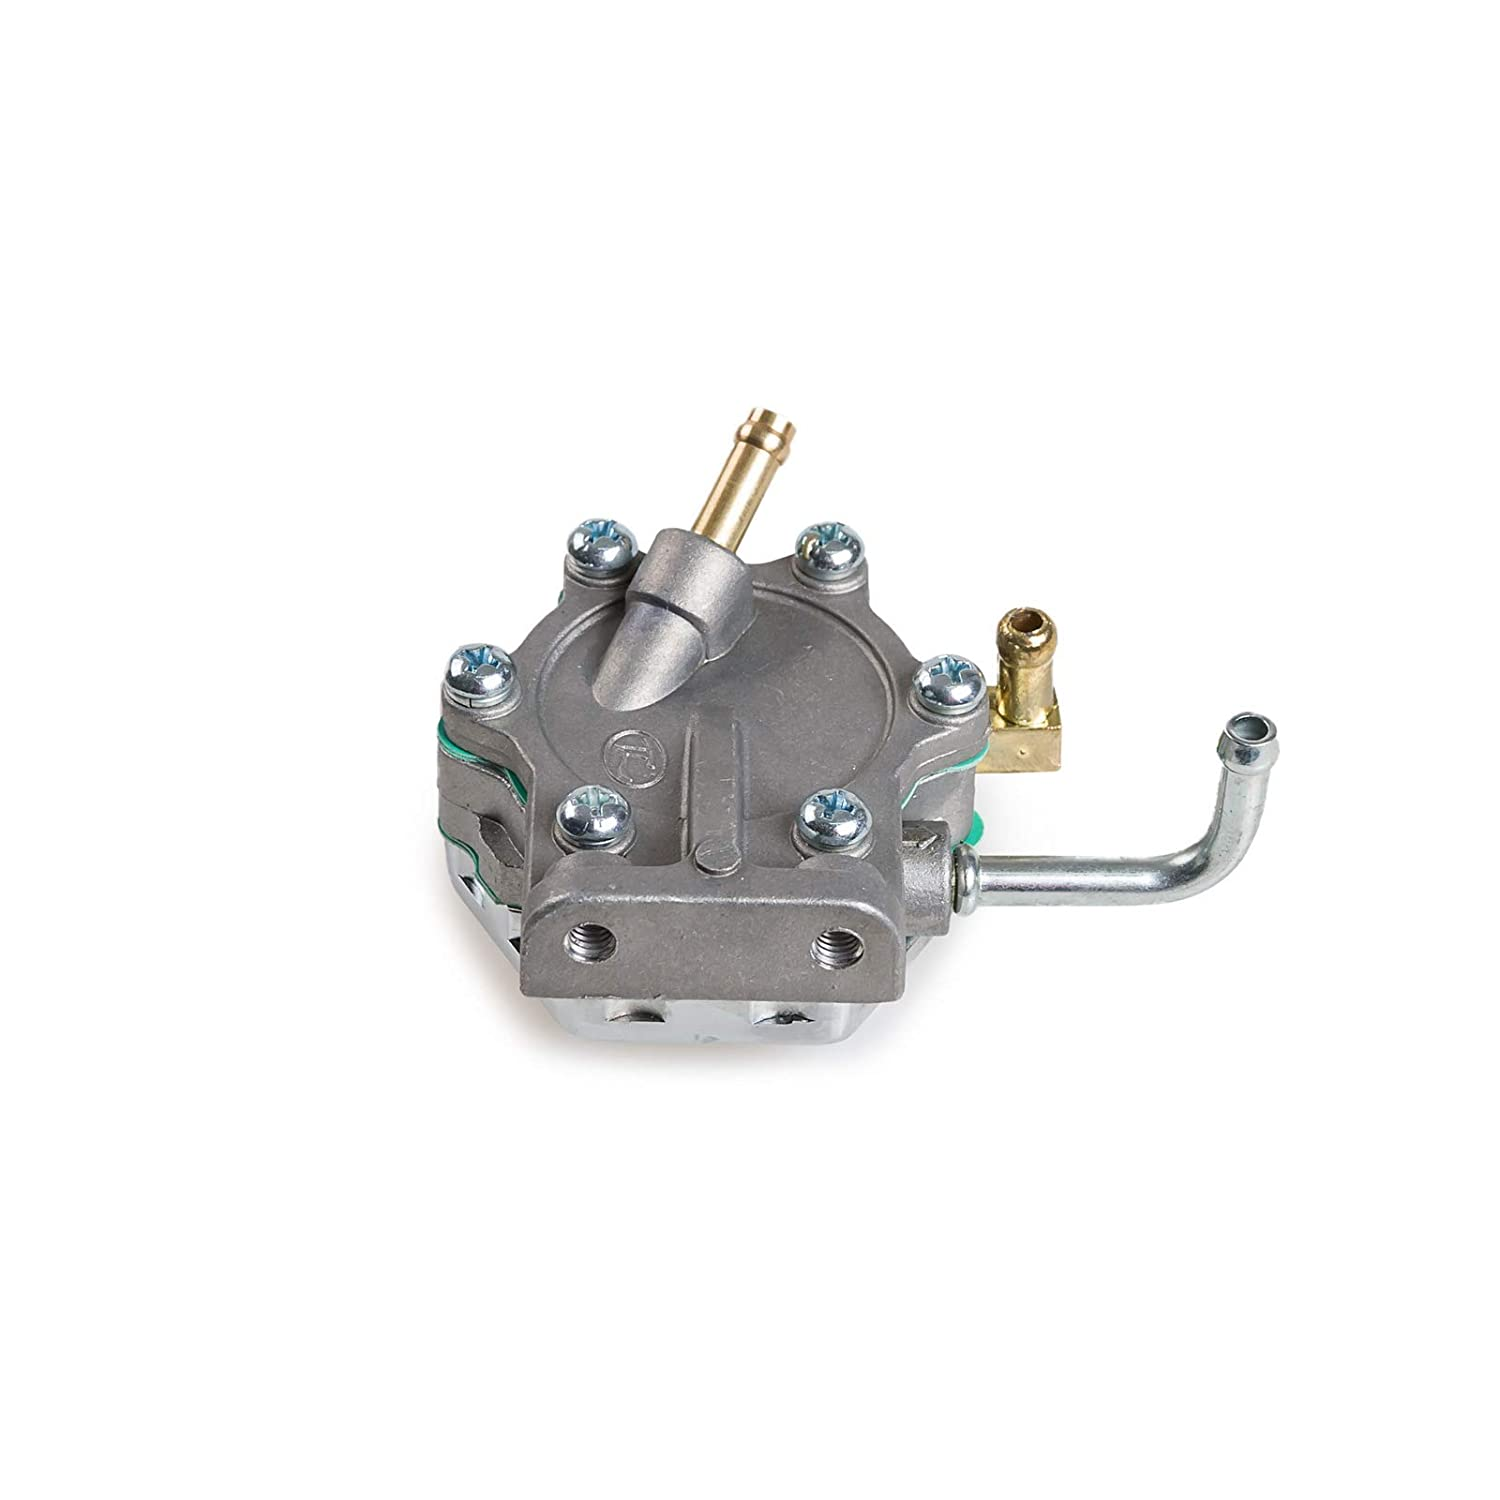 1988-2014 ,Virago XV125 1990-2014 H2Racing Pompes /à Carburant Assy pour Yamaha Virago XV250 Include Route 66